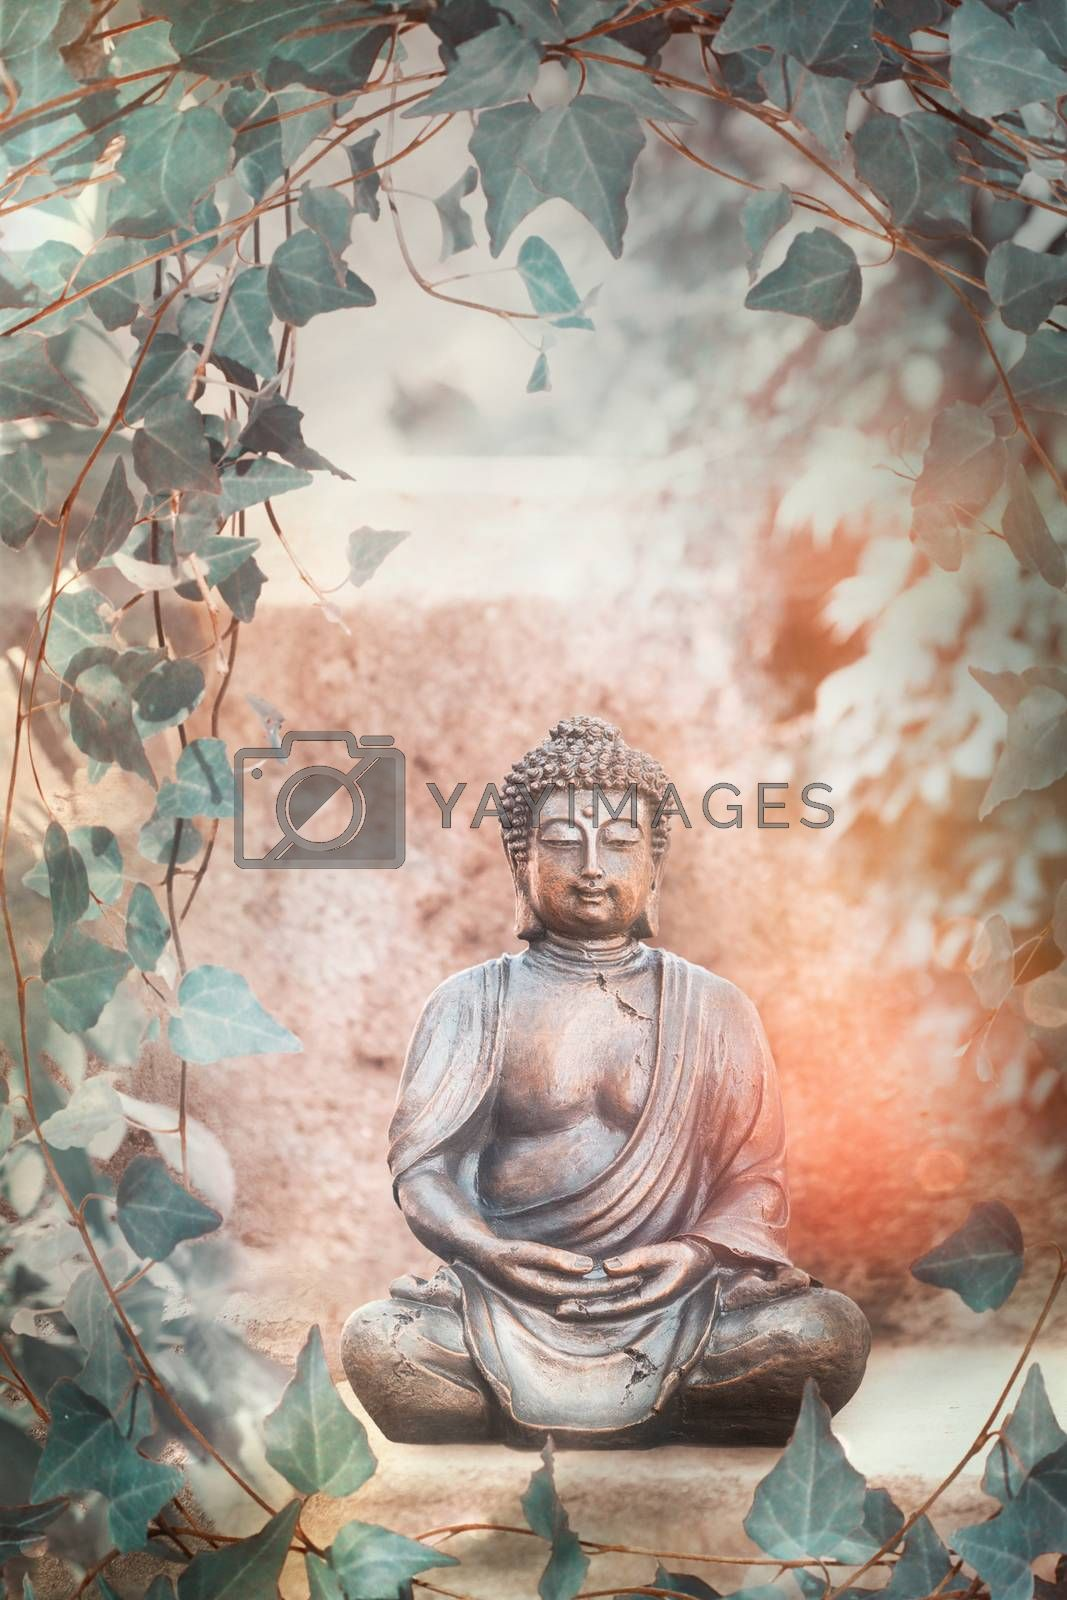 Buddha garden statue with vines and apple blossoms